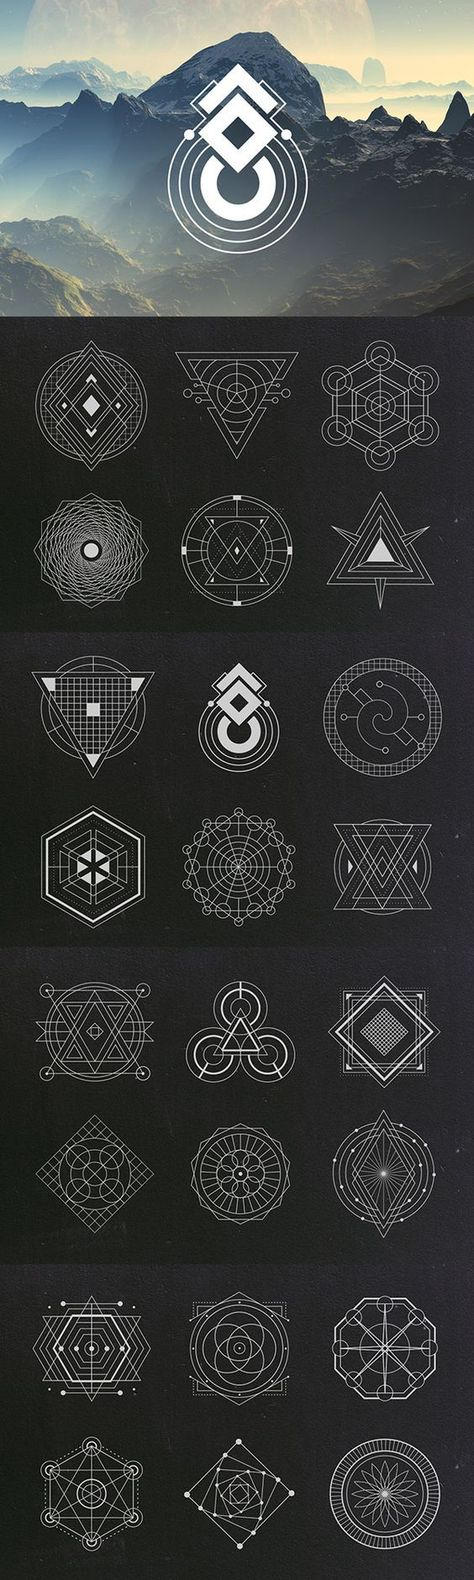 This product is part of the Sacred Geometry Bundle: